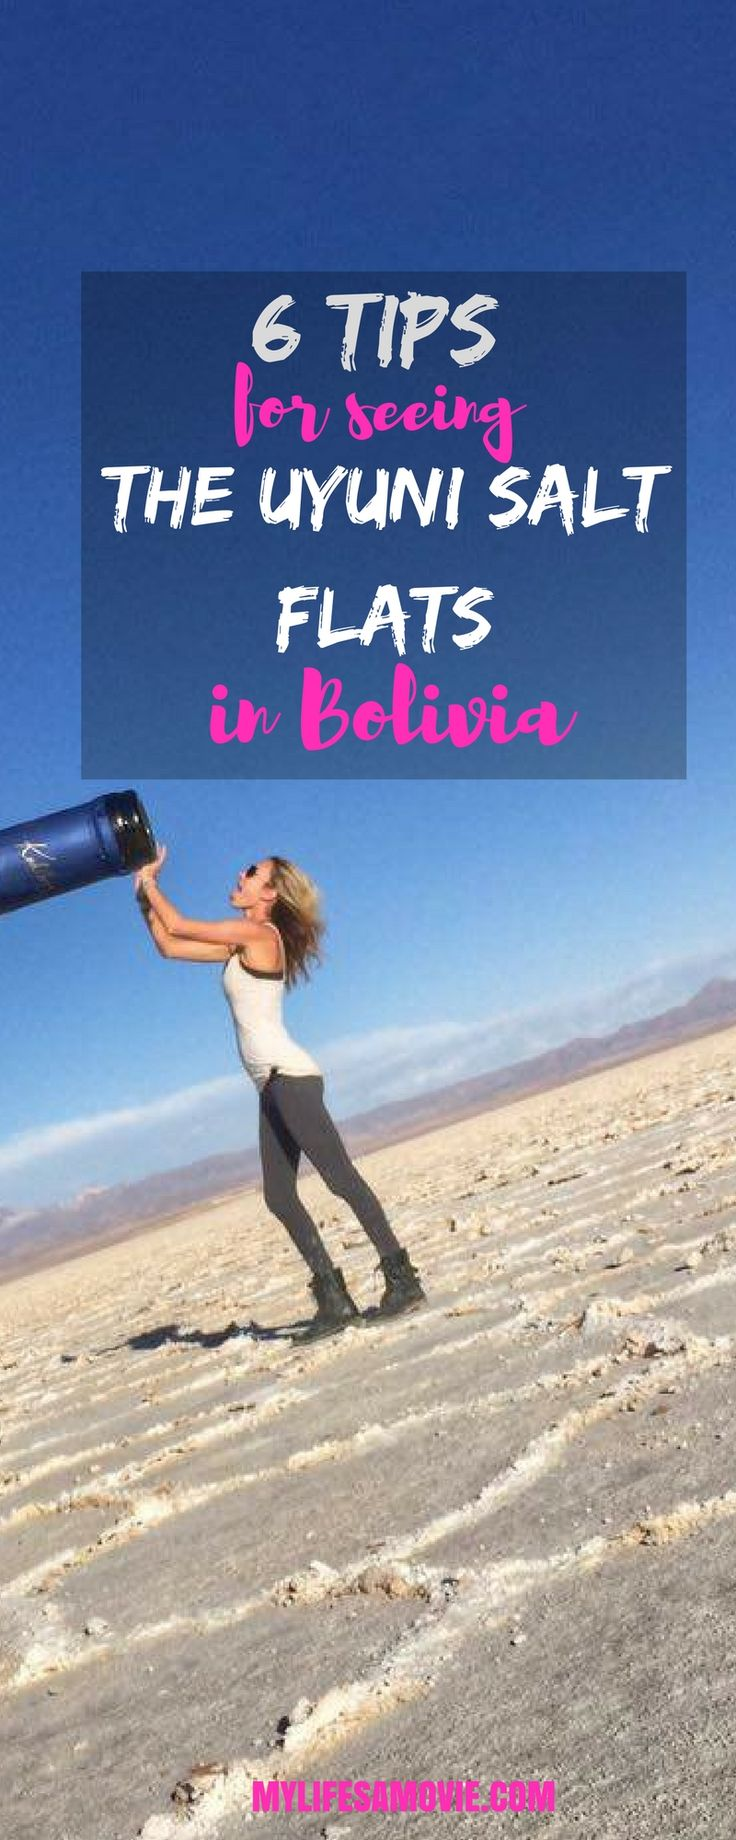 6 Tips for seeing The Uyuni Salt Flats in Bolivia